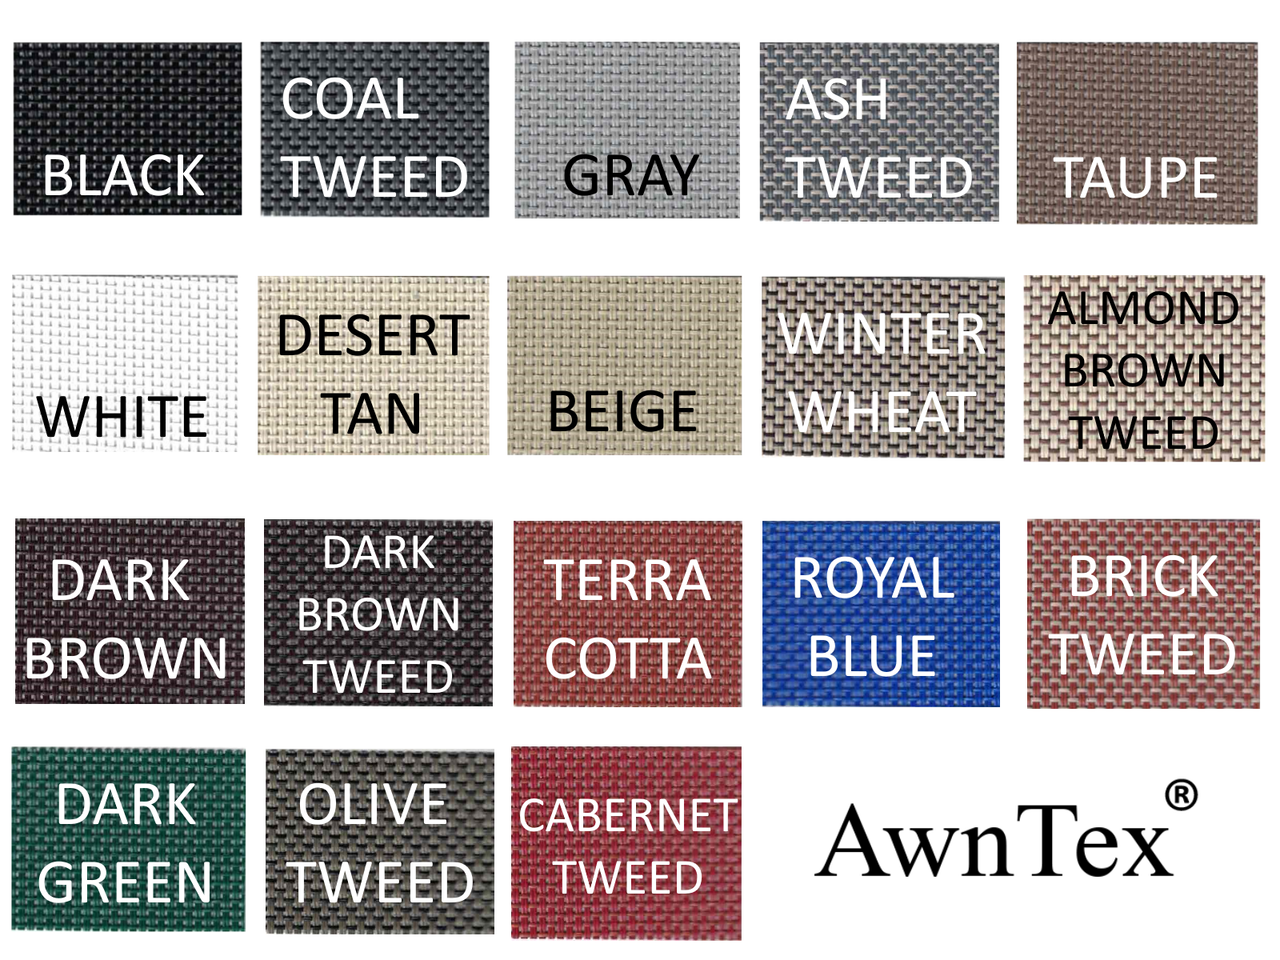 The round Tank Beret by SLO Sail and Canvas is available in many colors of high quality Awntex 160 Vinyl Mesh.